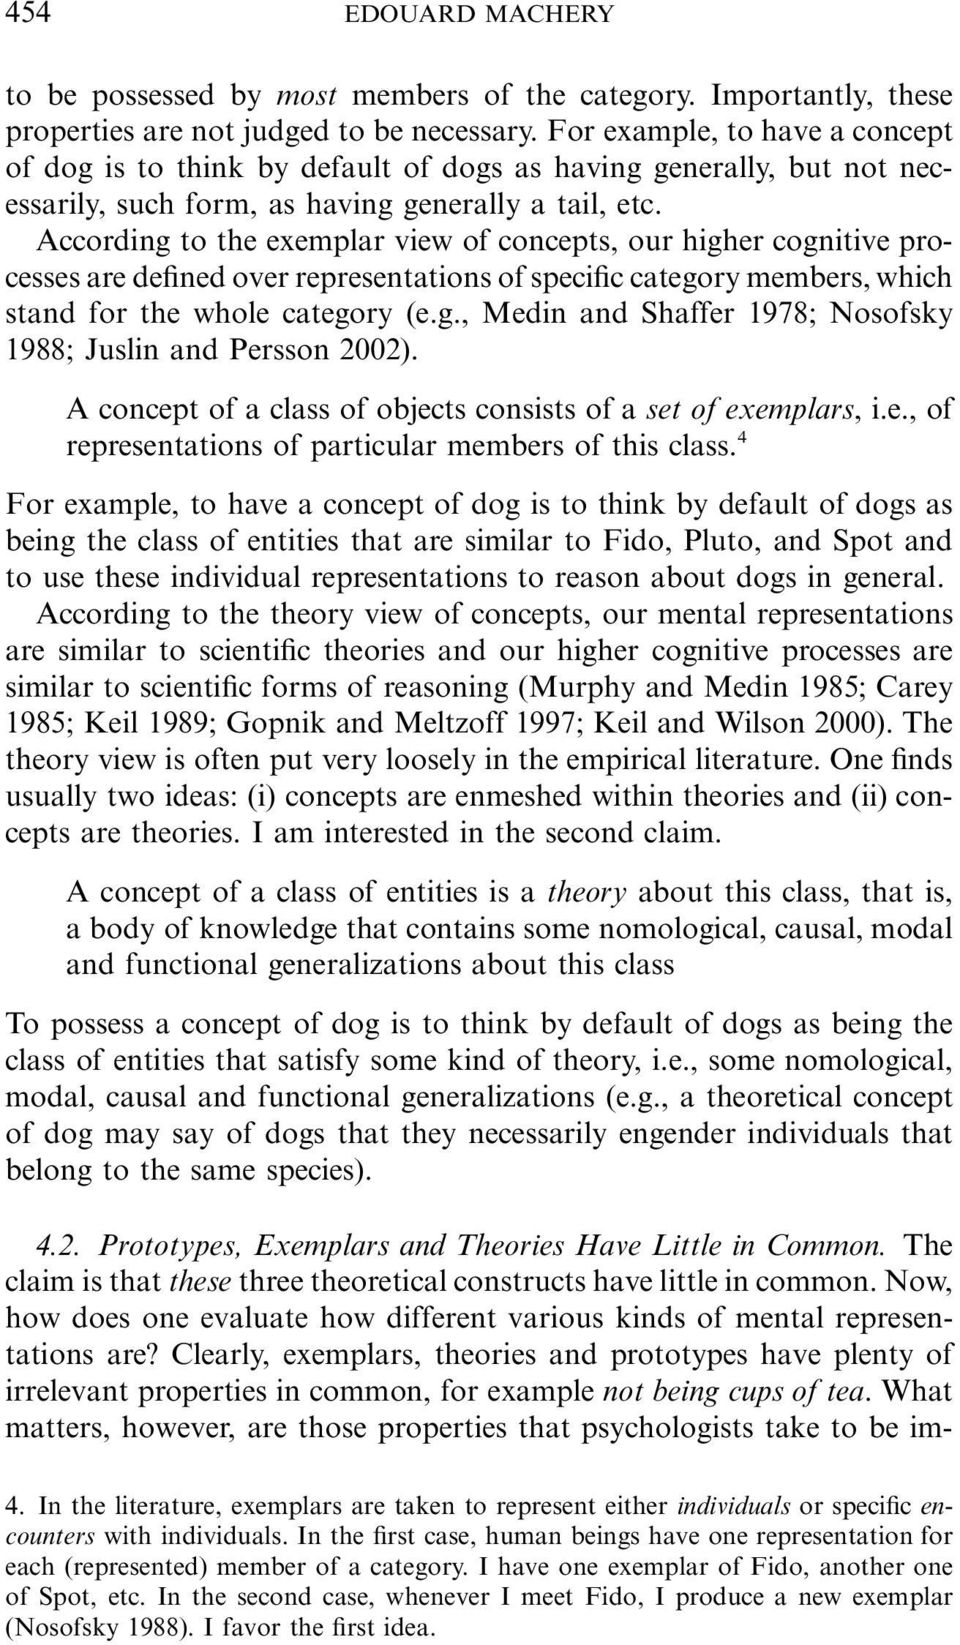 According to the exemplar view of concepts, our higher cognitive processes are defined over representations of specific category members, which stand for the whole category (e.g., Medin and Shaffer 1978; Nosofsky 1988; Juslin and Persson 2002).